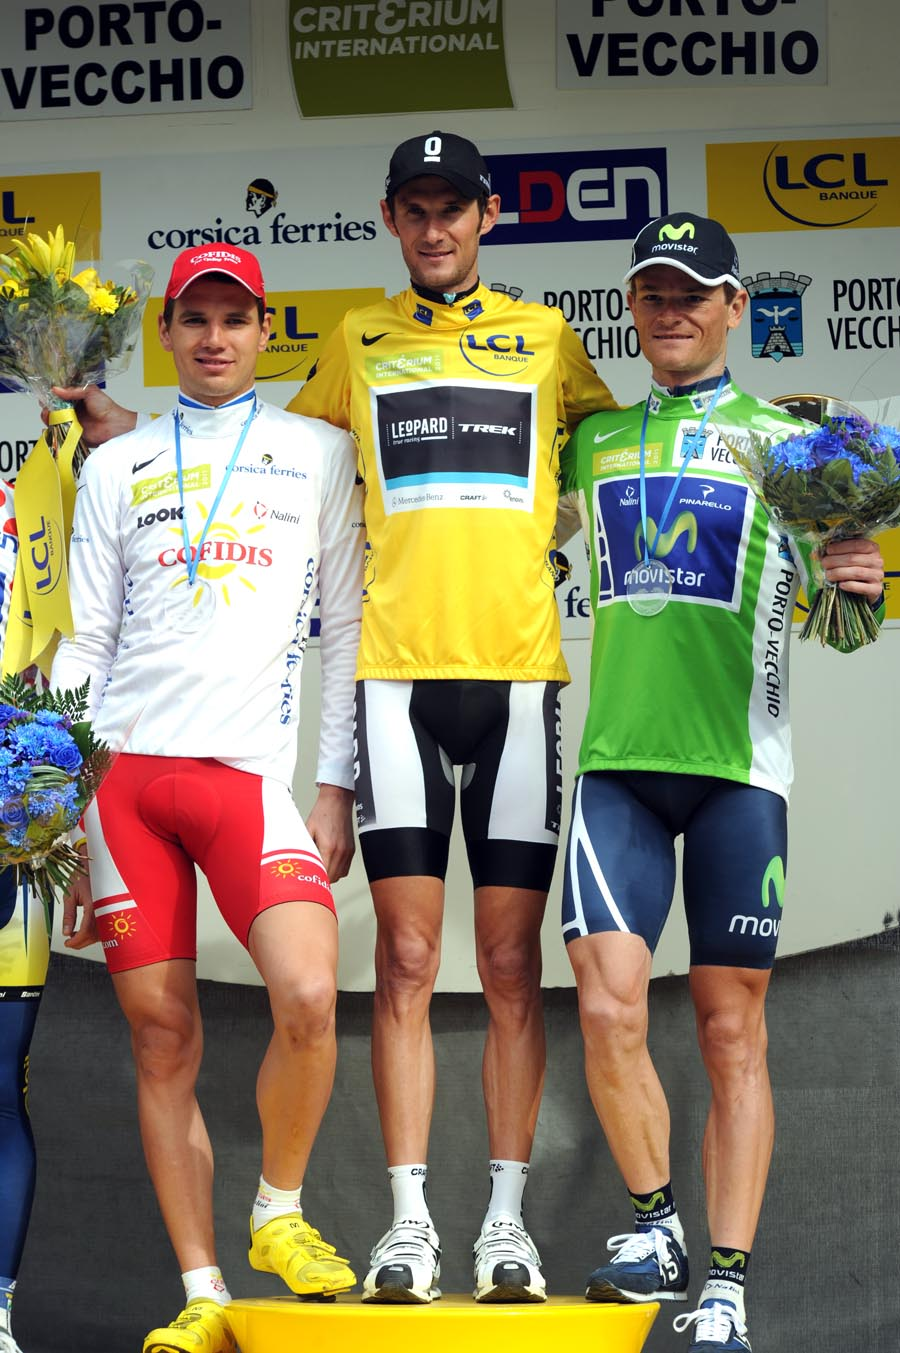 Frank Schleck wins overall, Criterium International 2011, stage three TT